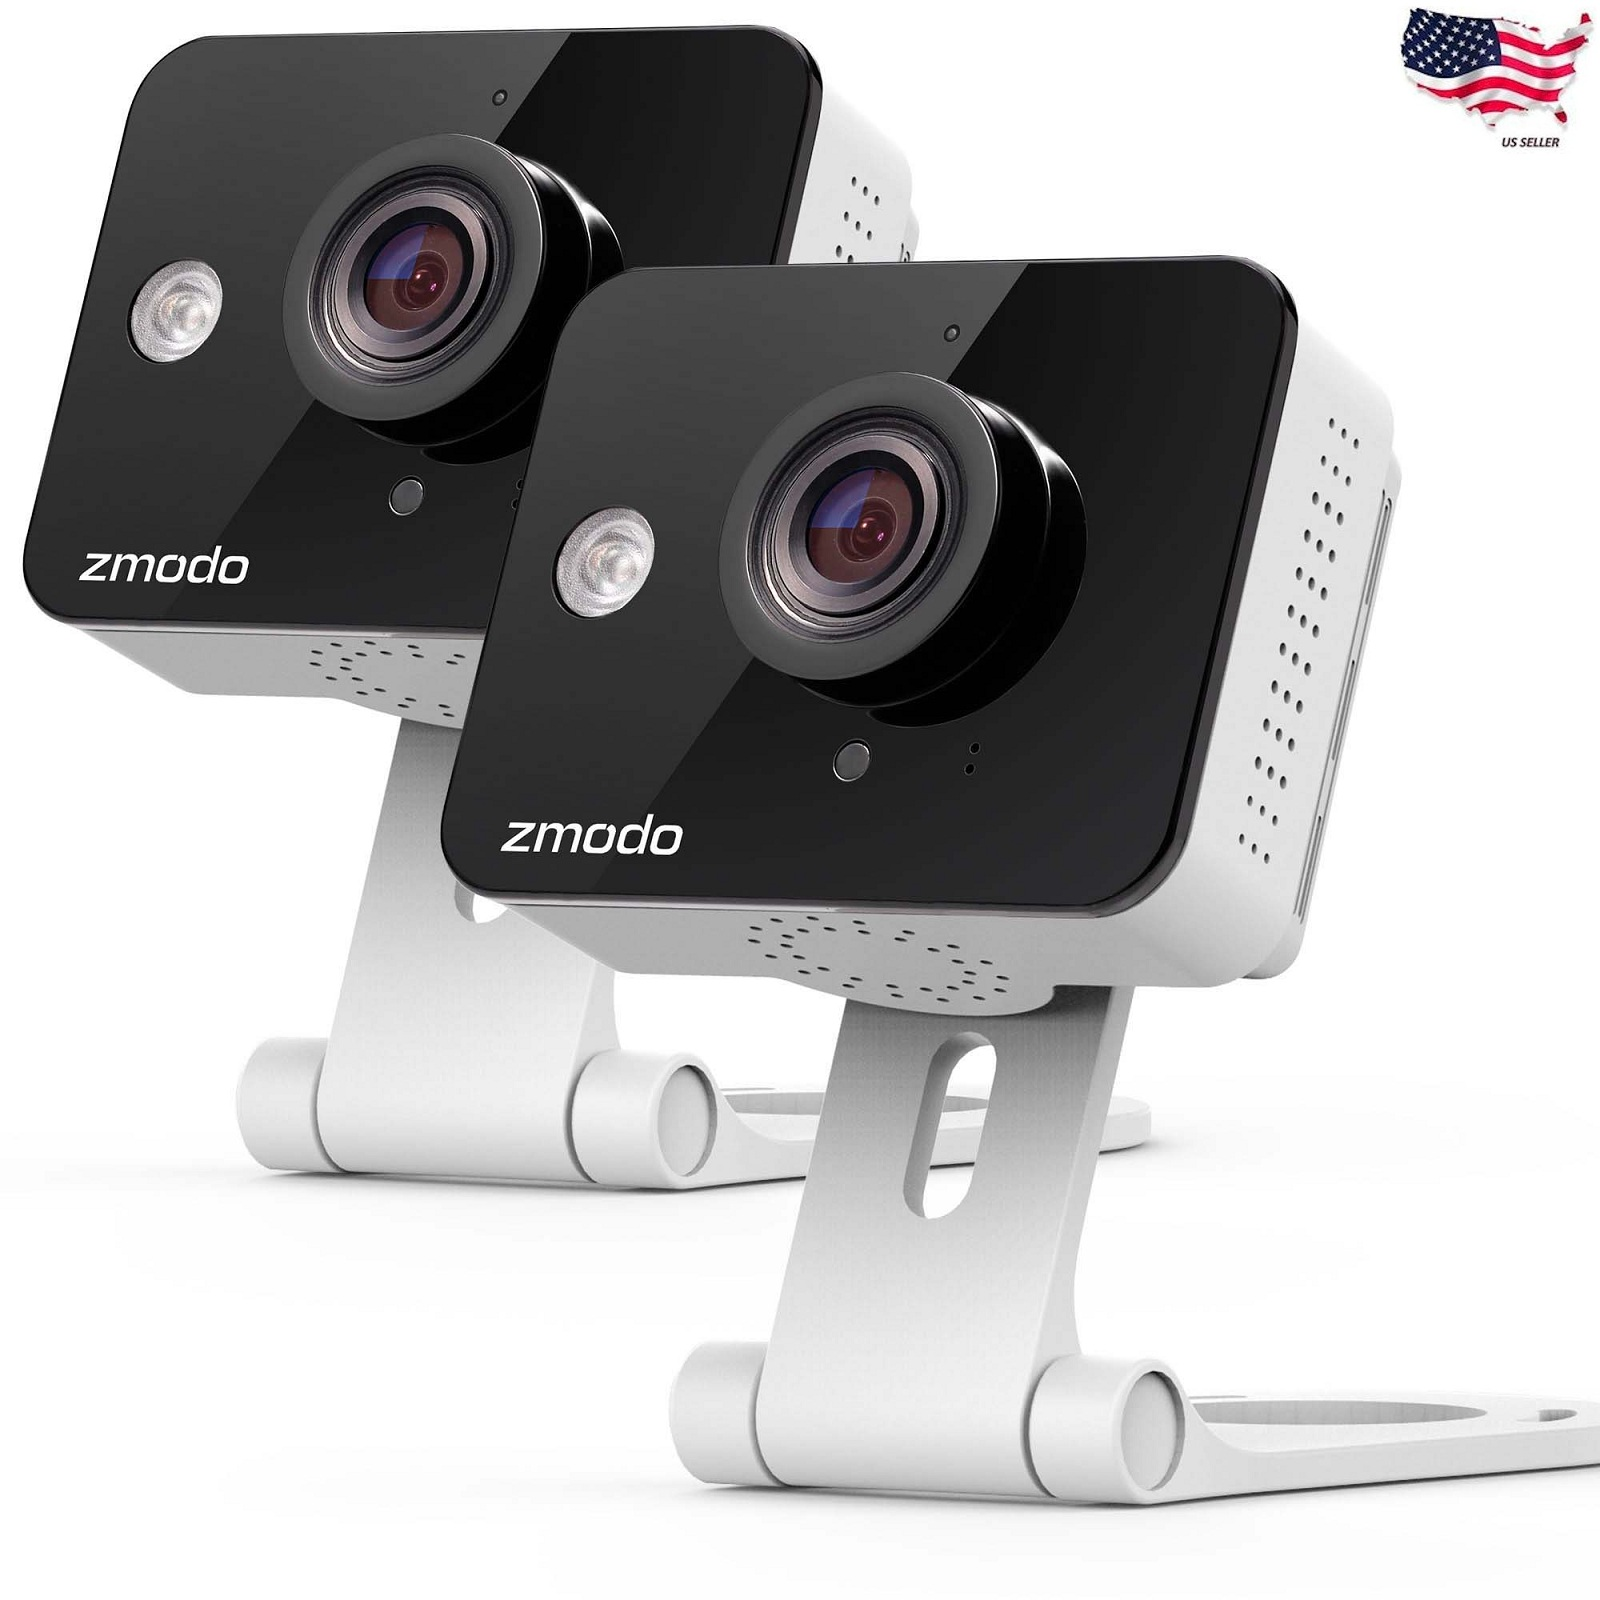 MeShare 720P HD WiFi Wireless Smart Security Camera 2-Way Audio 2 Pack Zmodo